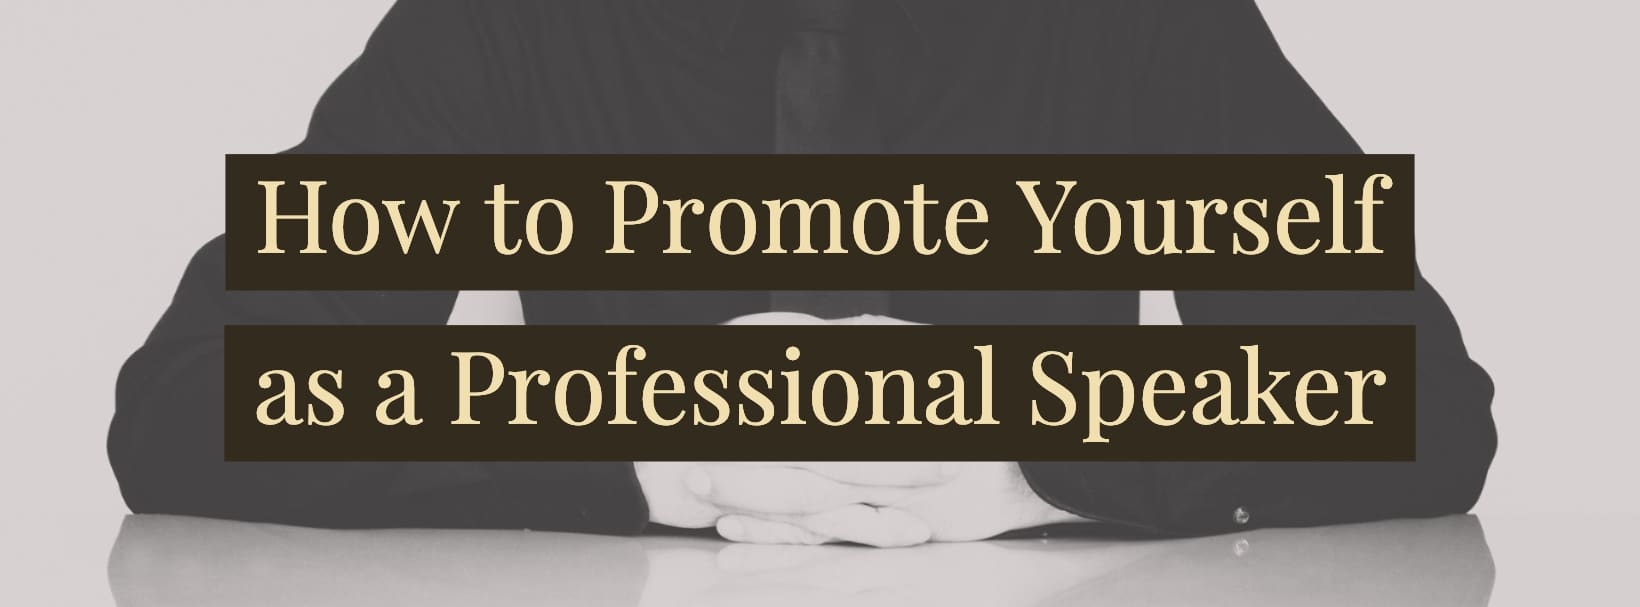 How-to-Promote-Yourself-as-a-Professional-Speaker